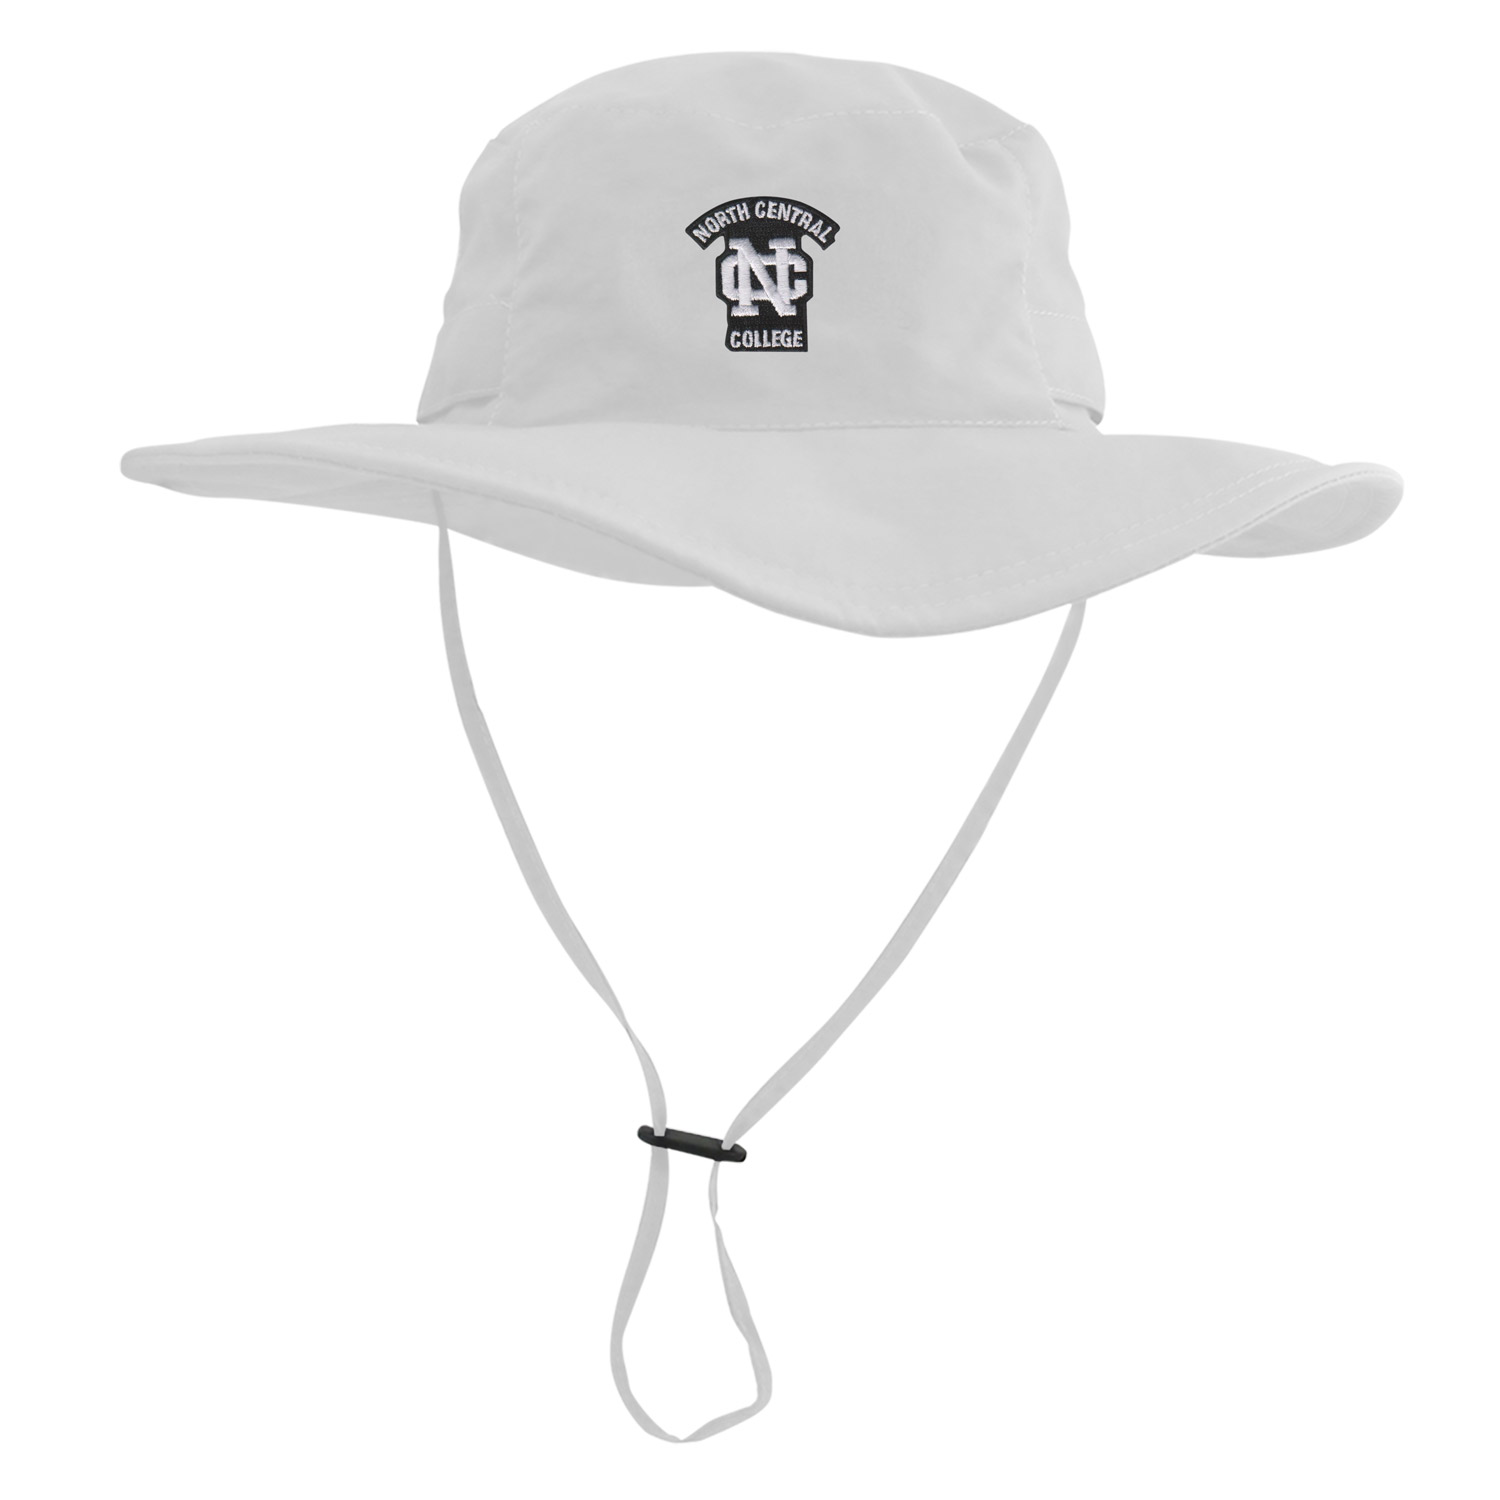 Image for the Bucket / Boonie Hat (White) product